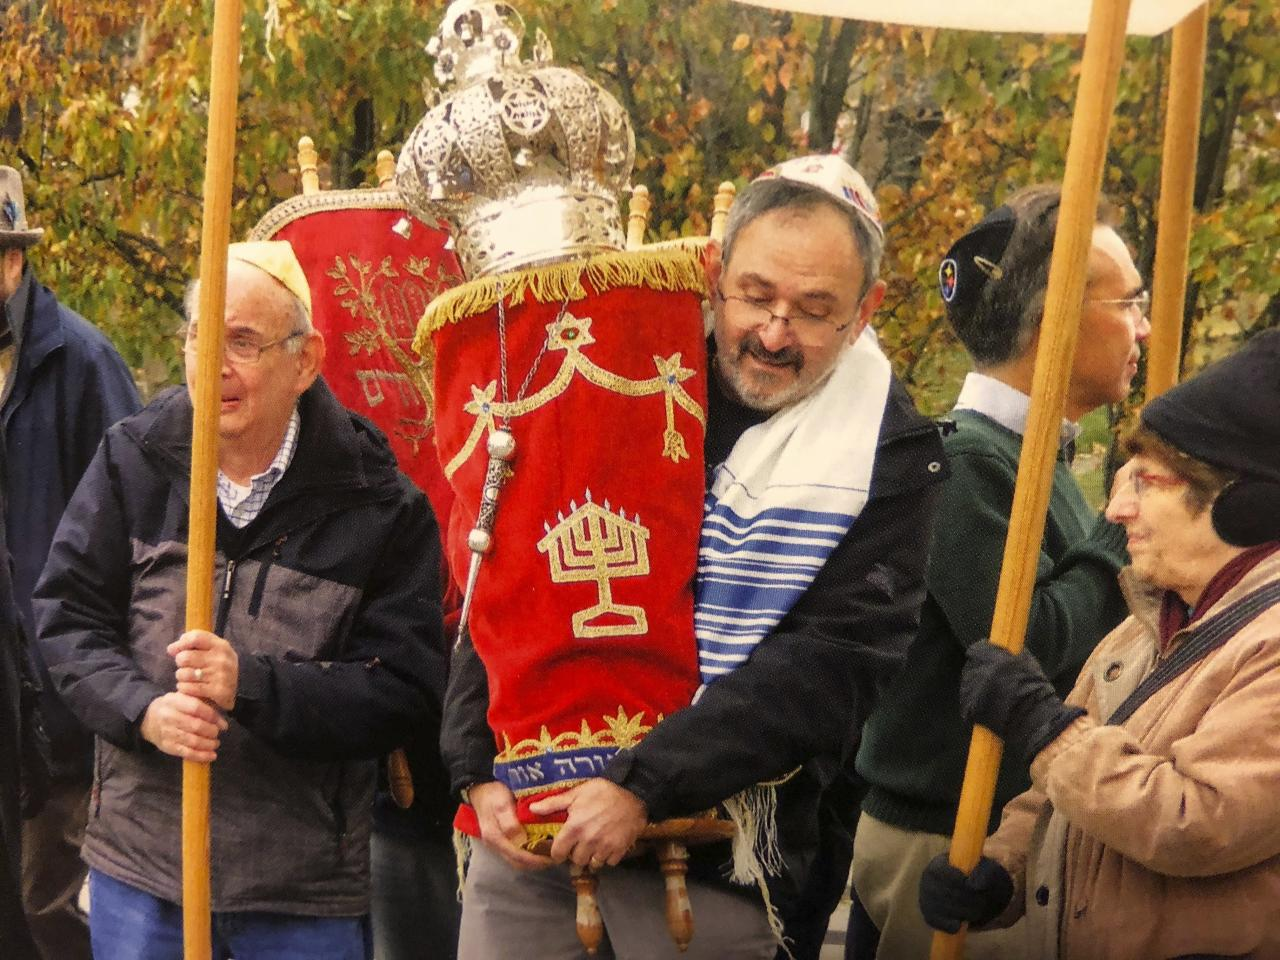 "<p>Gottfried (pictured centre, holding the Torah) was a dentist and also an ""avid golfer, runner and book lover,"" according to USA Today. Not only had he completed the 10-kilometre Great Race, he volunteered with the Catholic Charities Free Dental Clinic with his wife, Margaret Duranchko, the publication reports.<br />(Photo from The Associated Press) </p>"